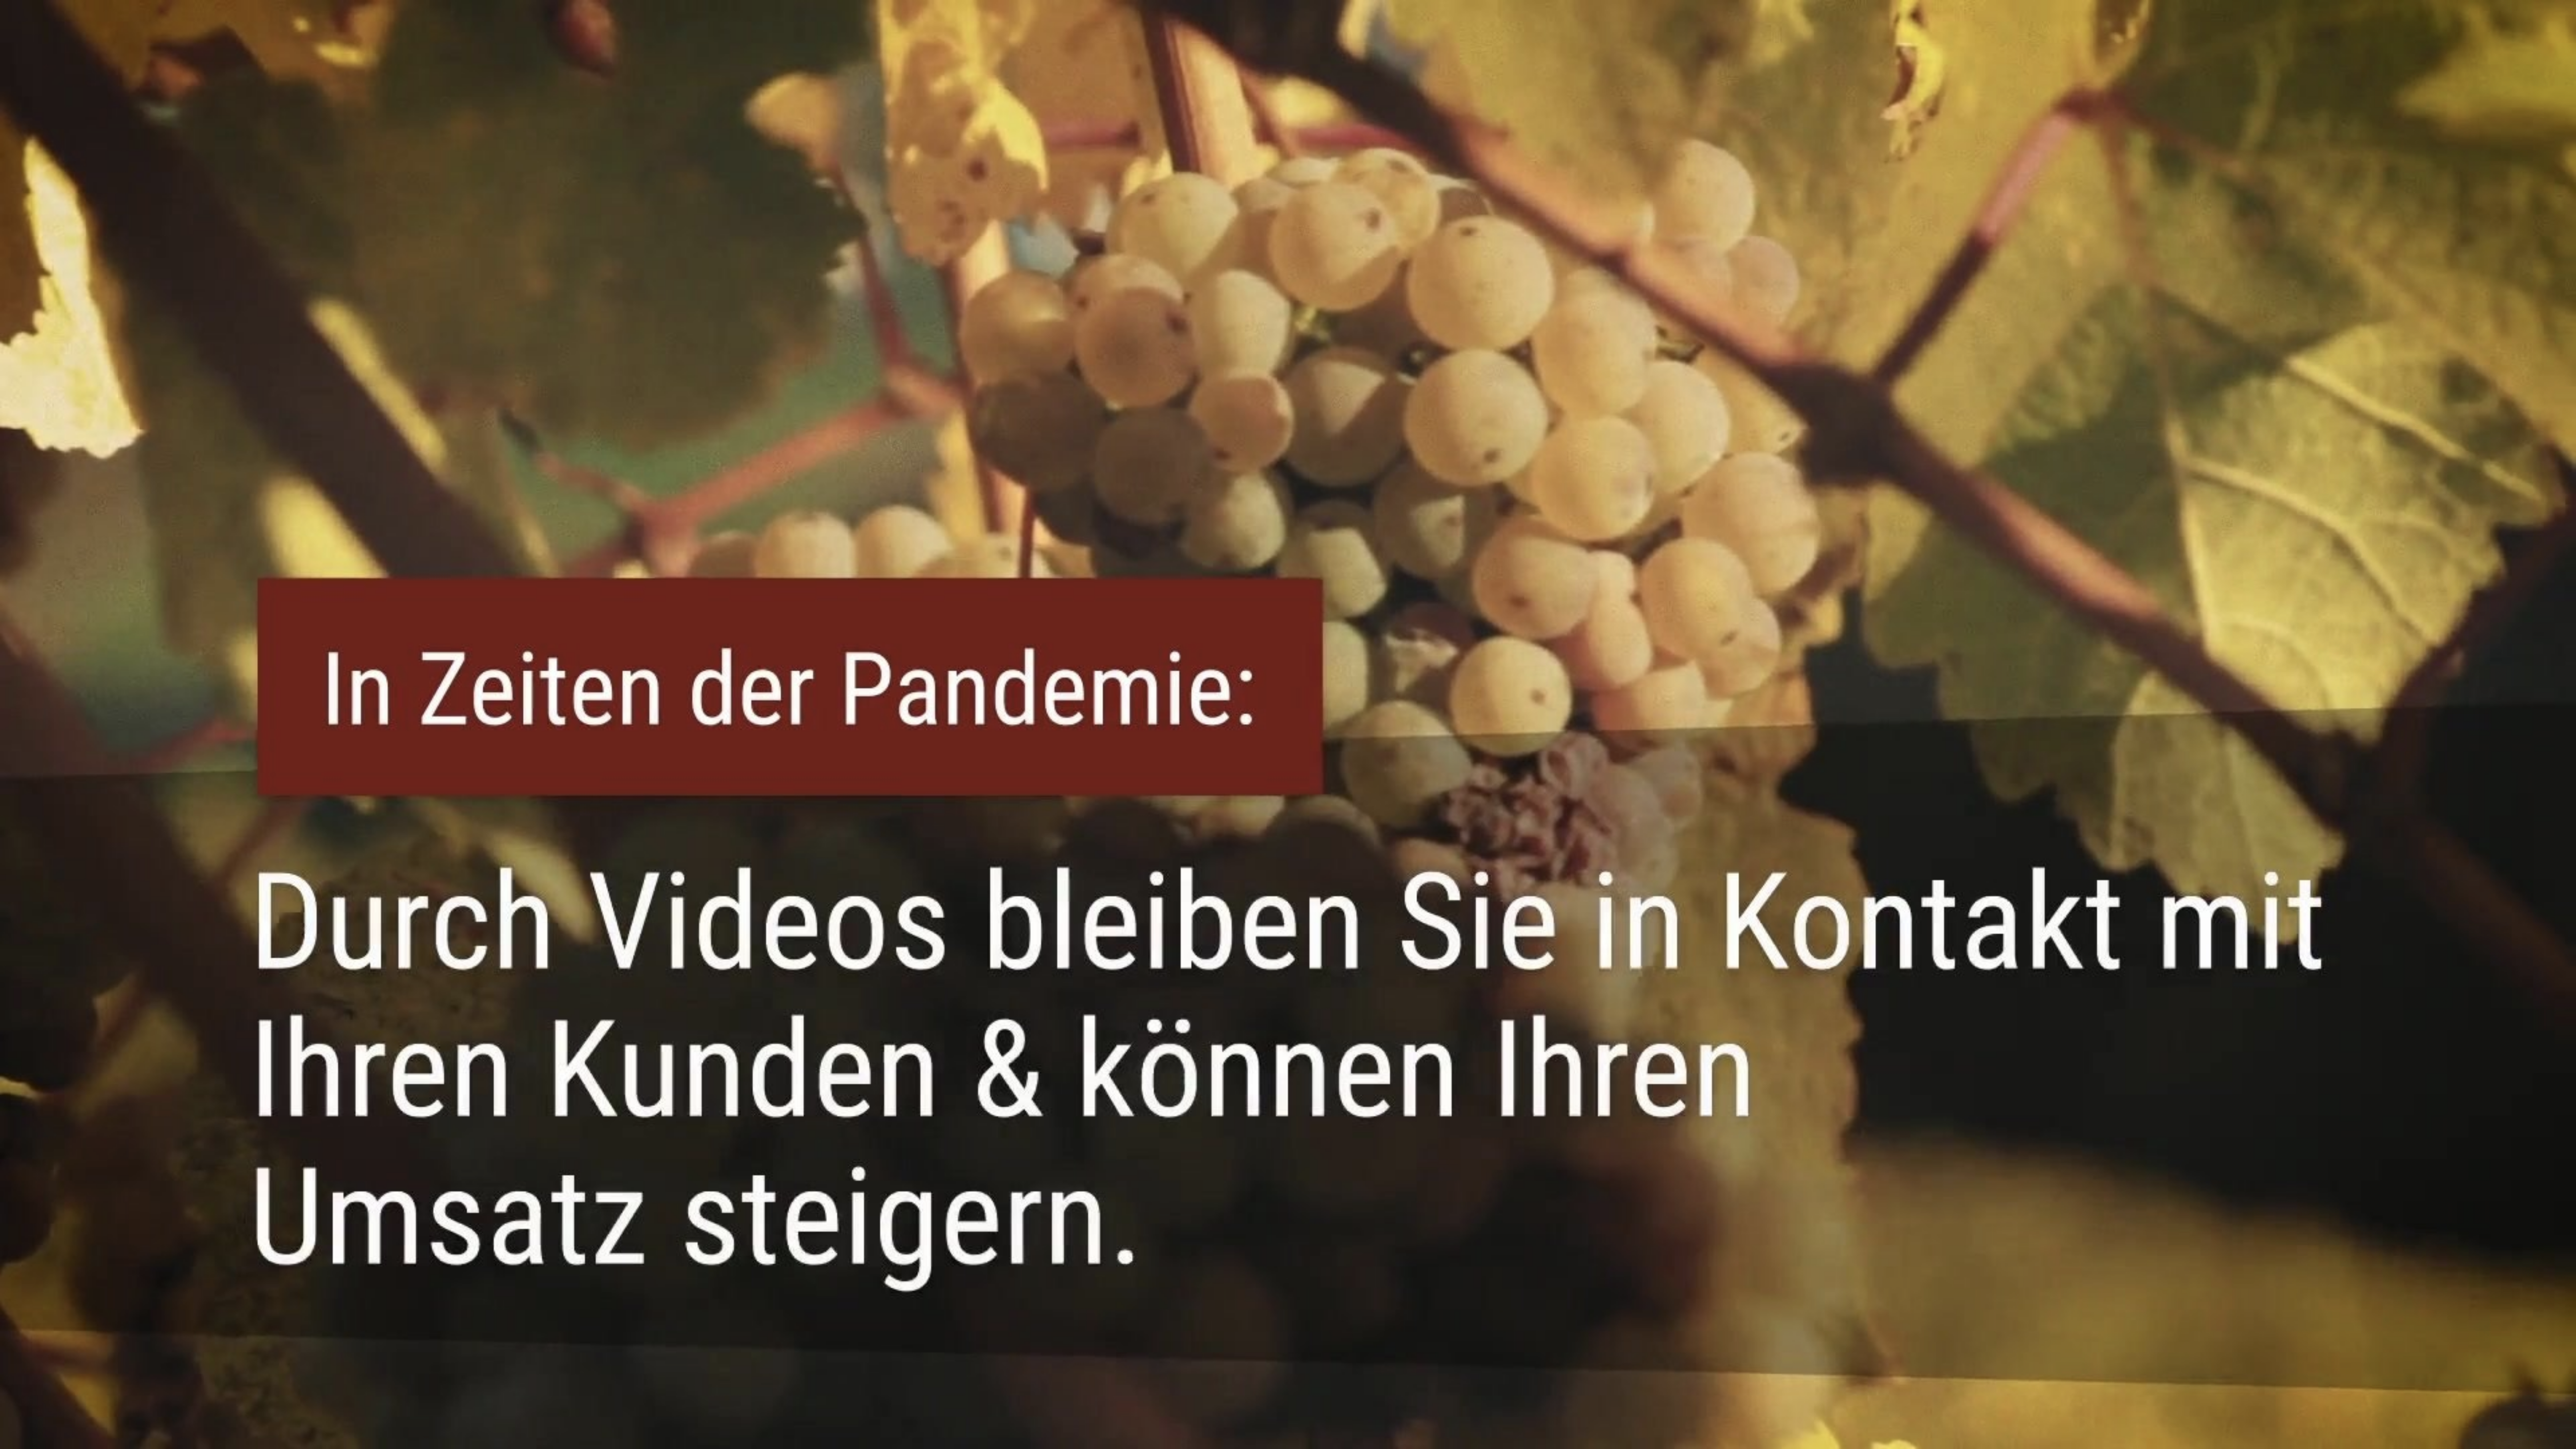 Winemakers in times of the pandemic